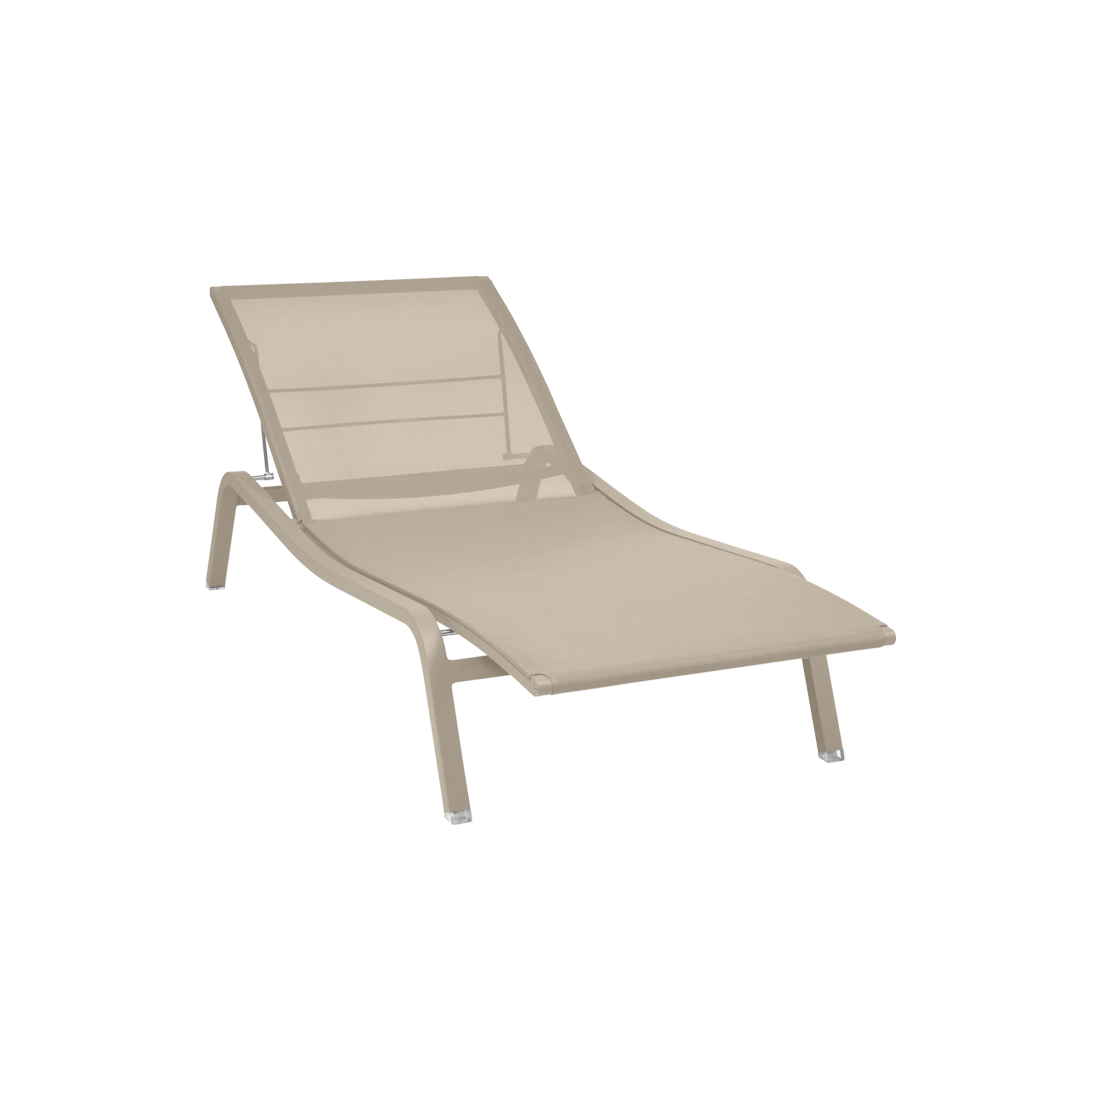 aliz sunlounger garden chaise longue. Black Bedroom Furniture Sets. Home Design Ideas